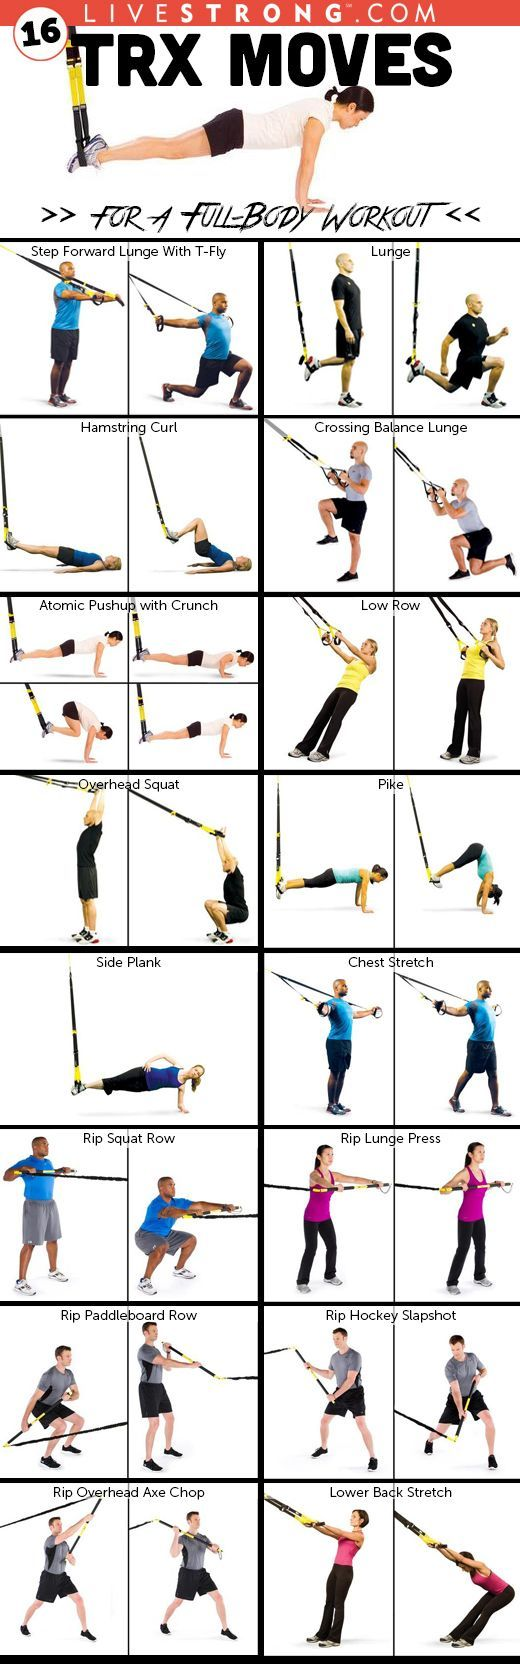 LiHao Schlingentrainer Suspensiontrainer TRX Functional Training Fitness - http://www.amazon.de/dp/B00RLH0M6C                                                                                                                                                                                 Mehr